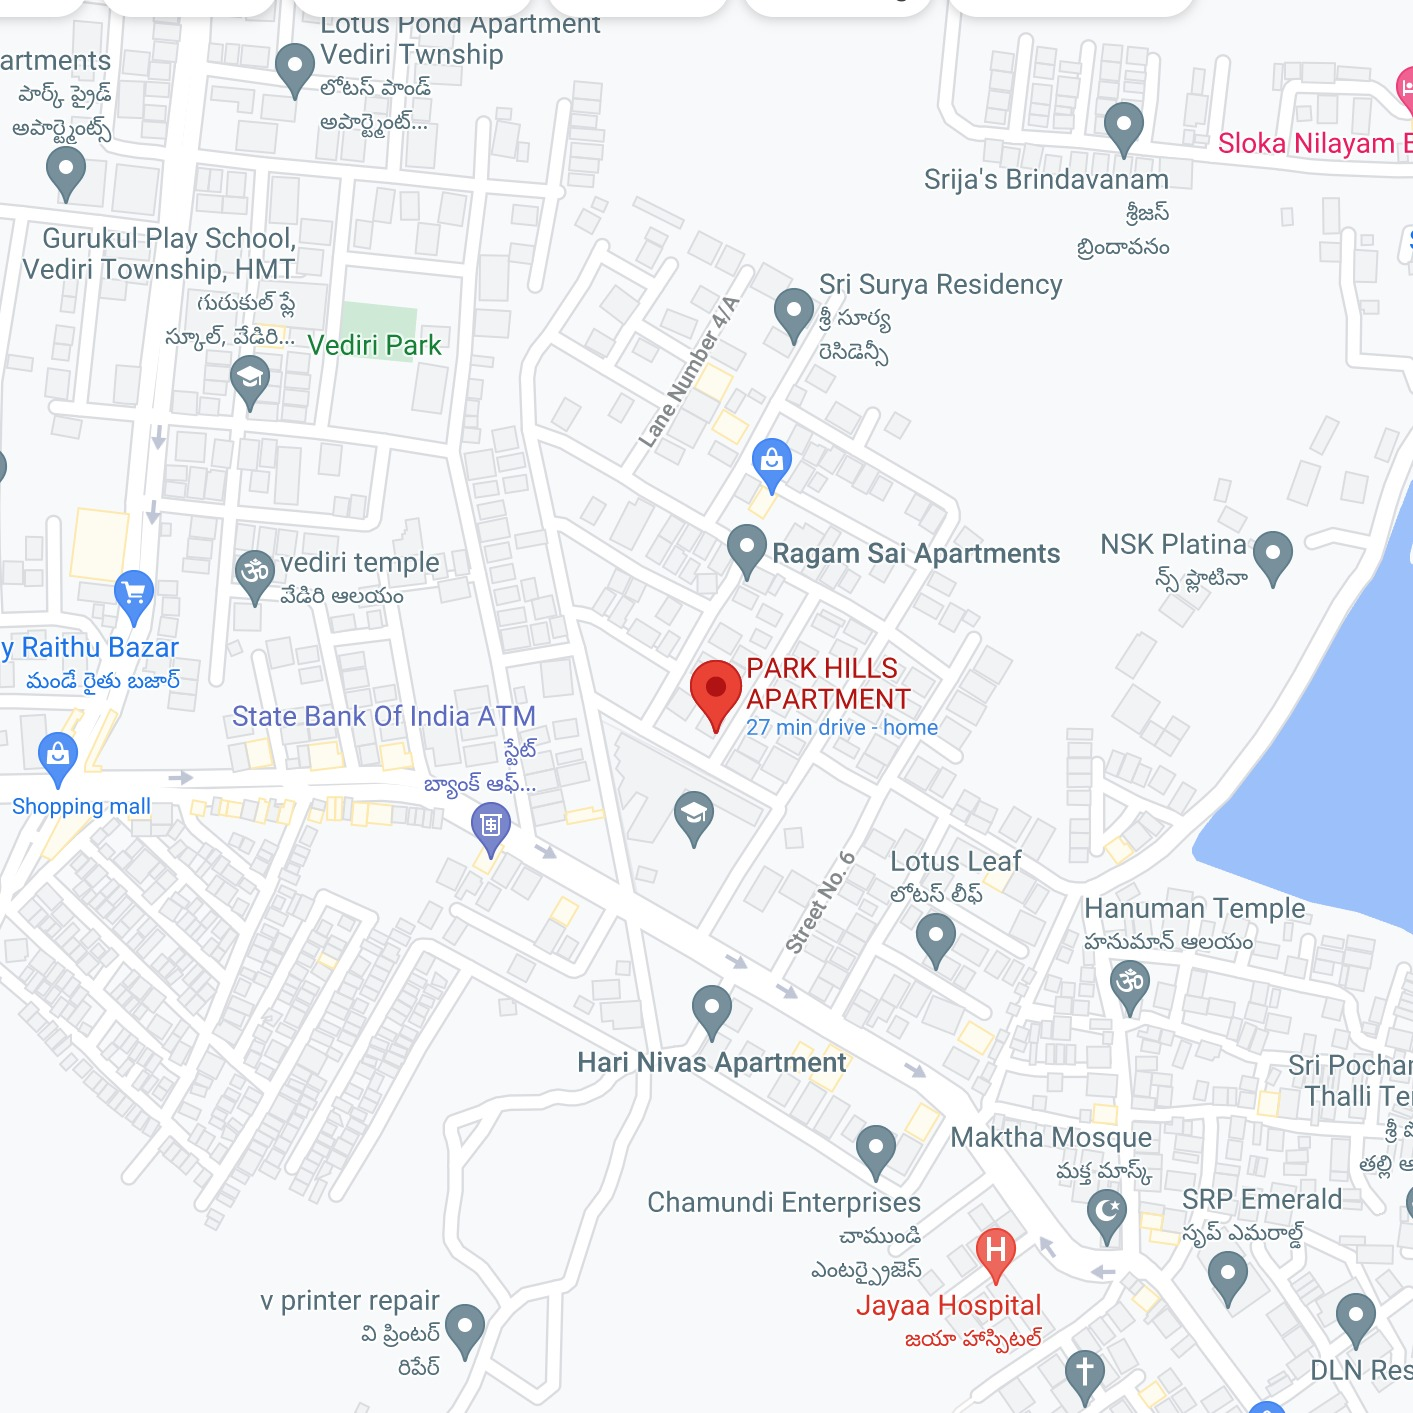 map-location-Picture-park-hills-and-view-apartment-2643618